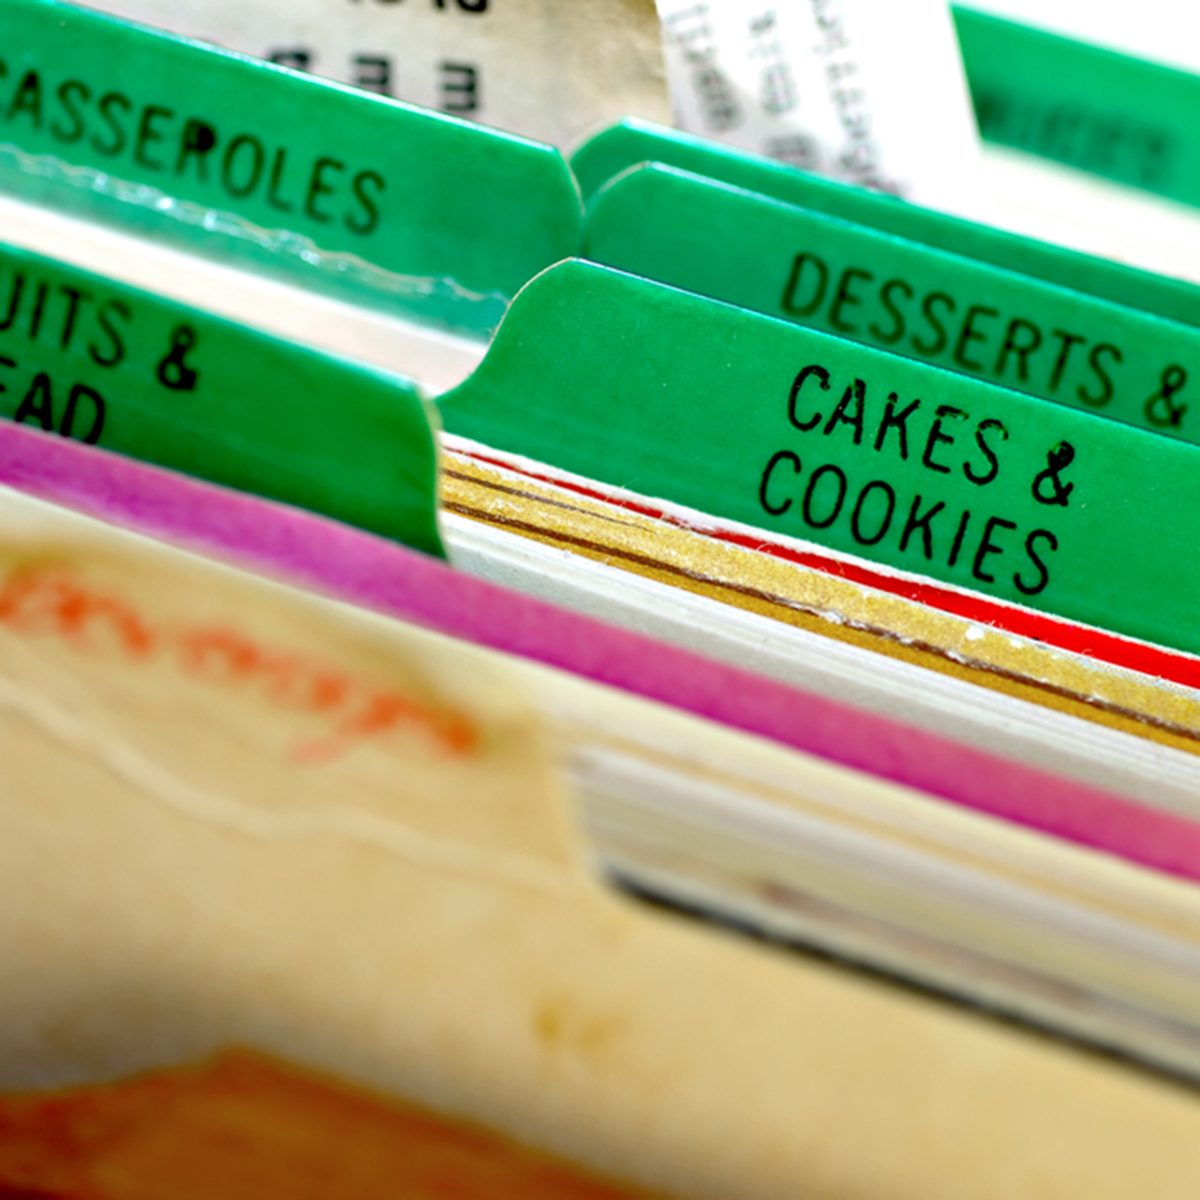 Cakes and cookies recipes in a recipe box